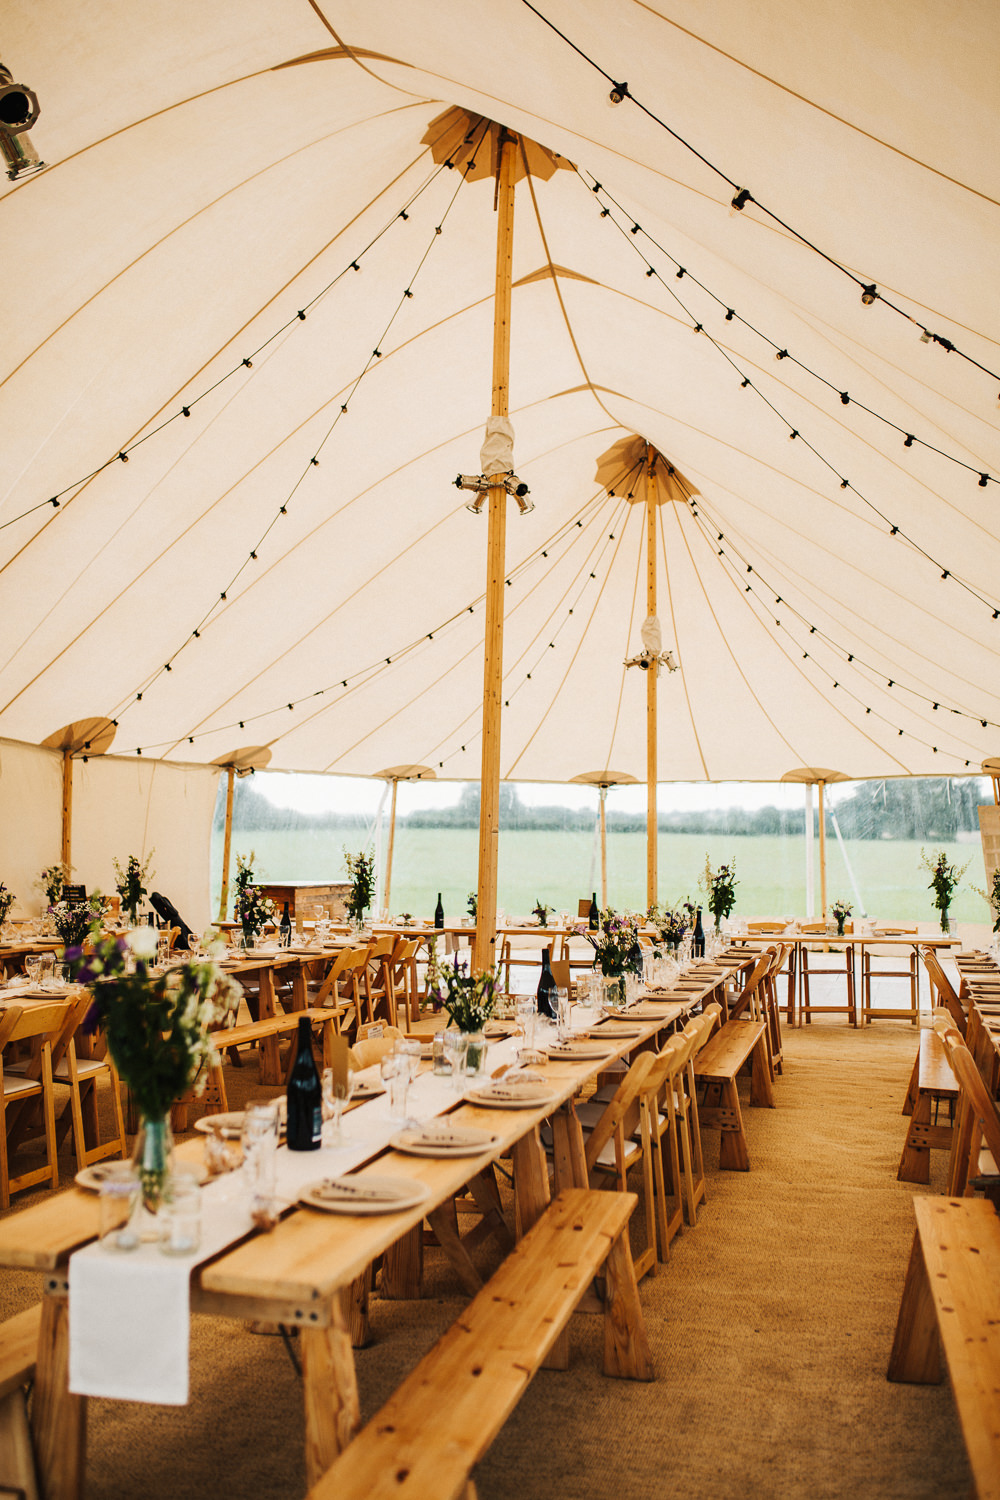 Wooden Tables Benches Chairs Festoon Lighting Whimsical Countryside Sperry Tent Wedding Emilie May Photography